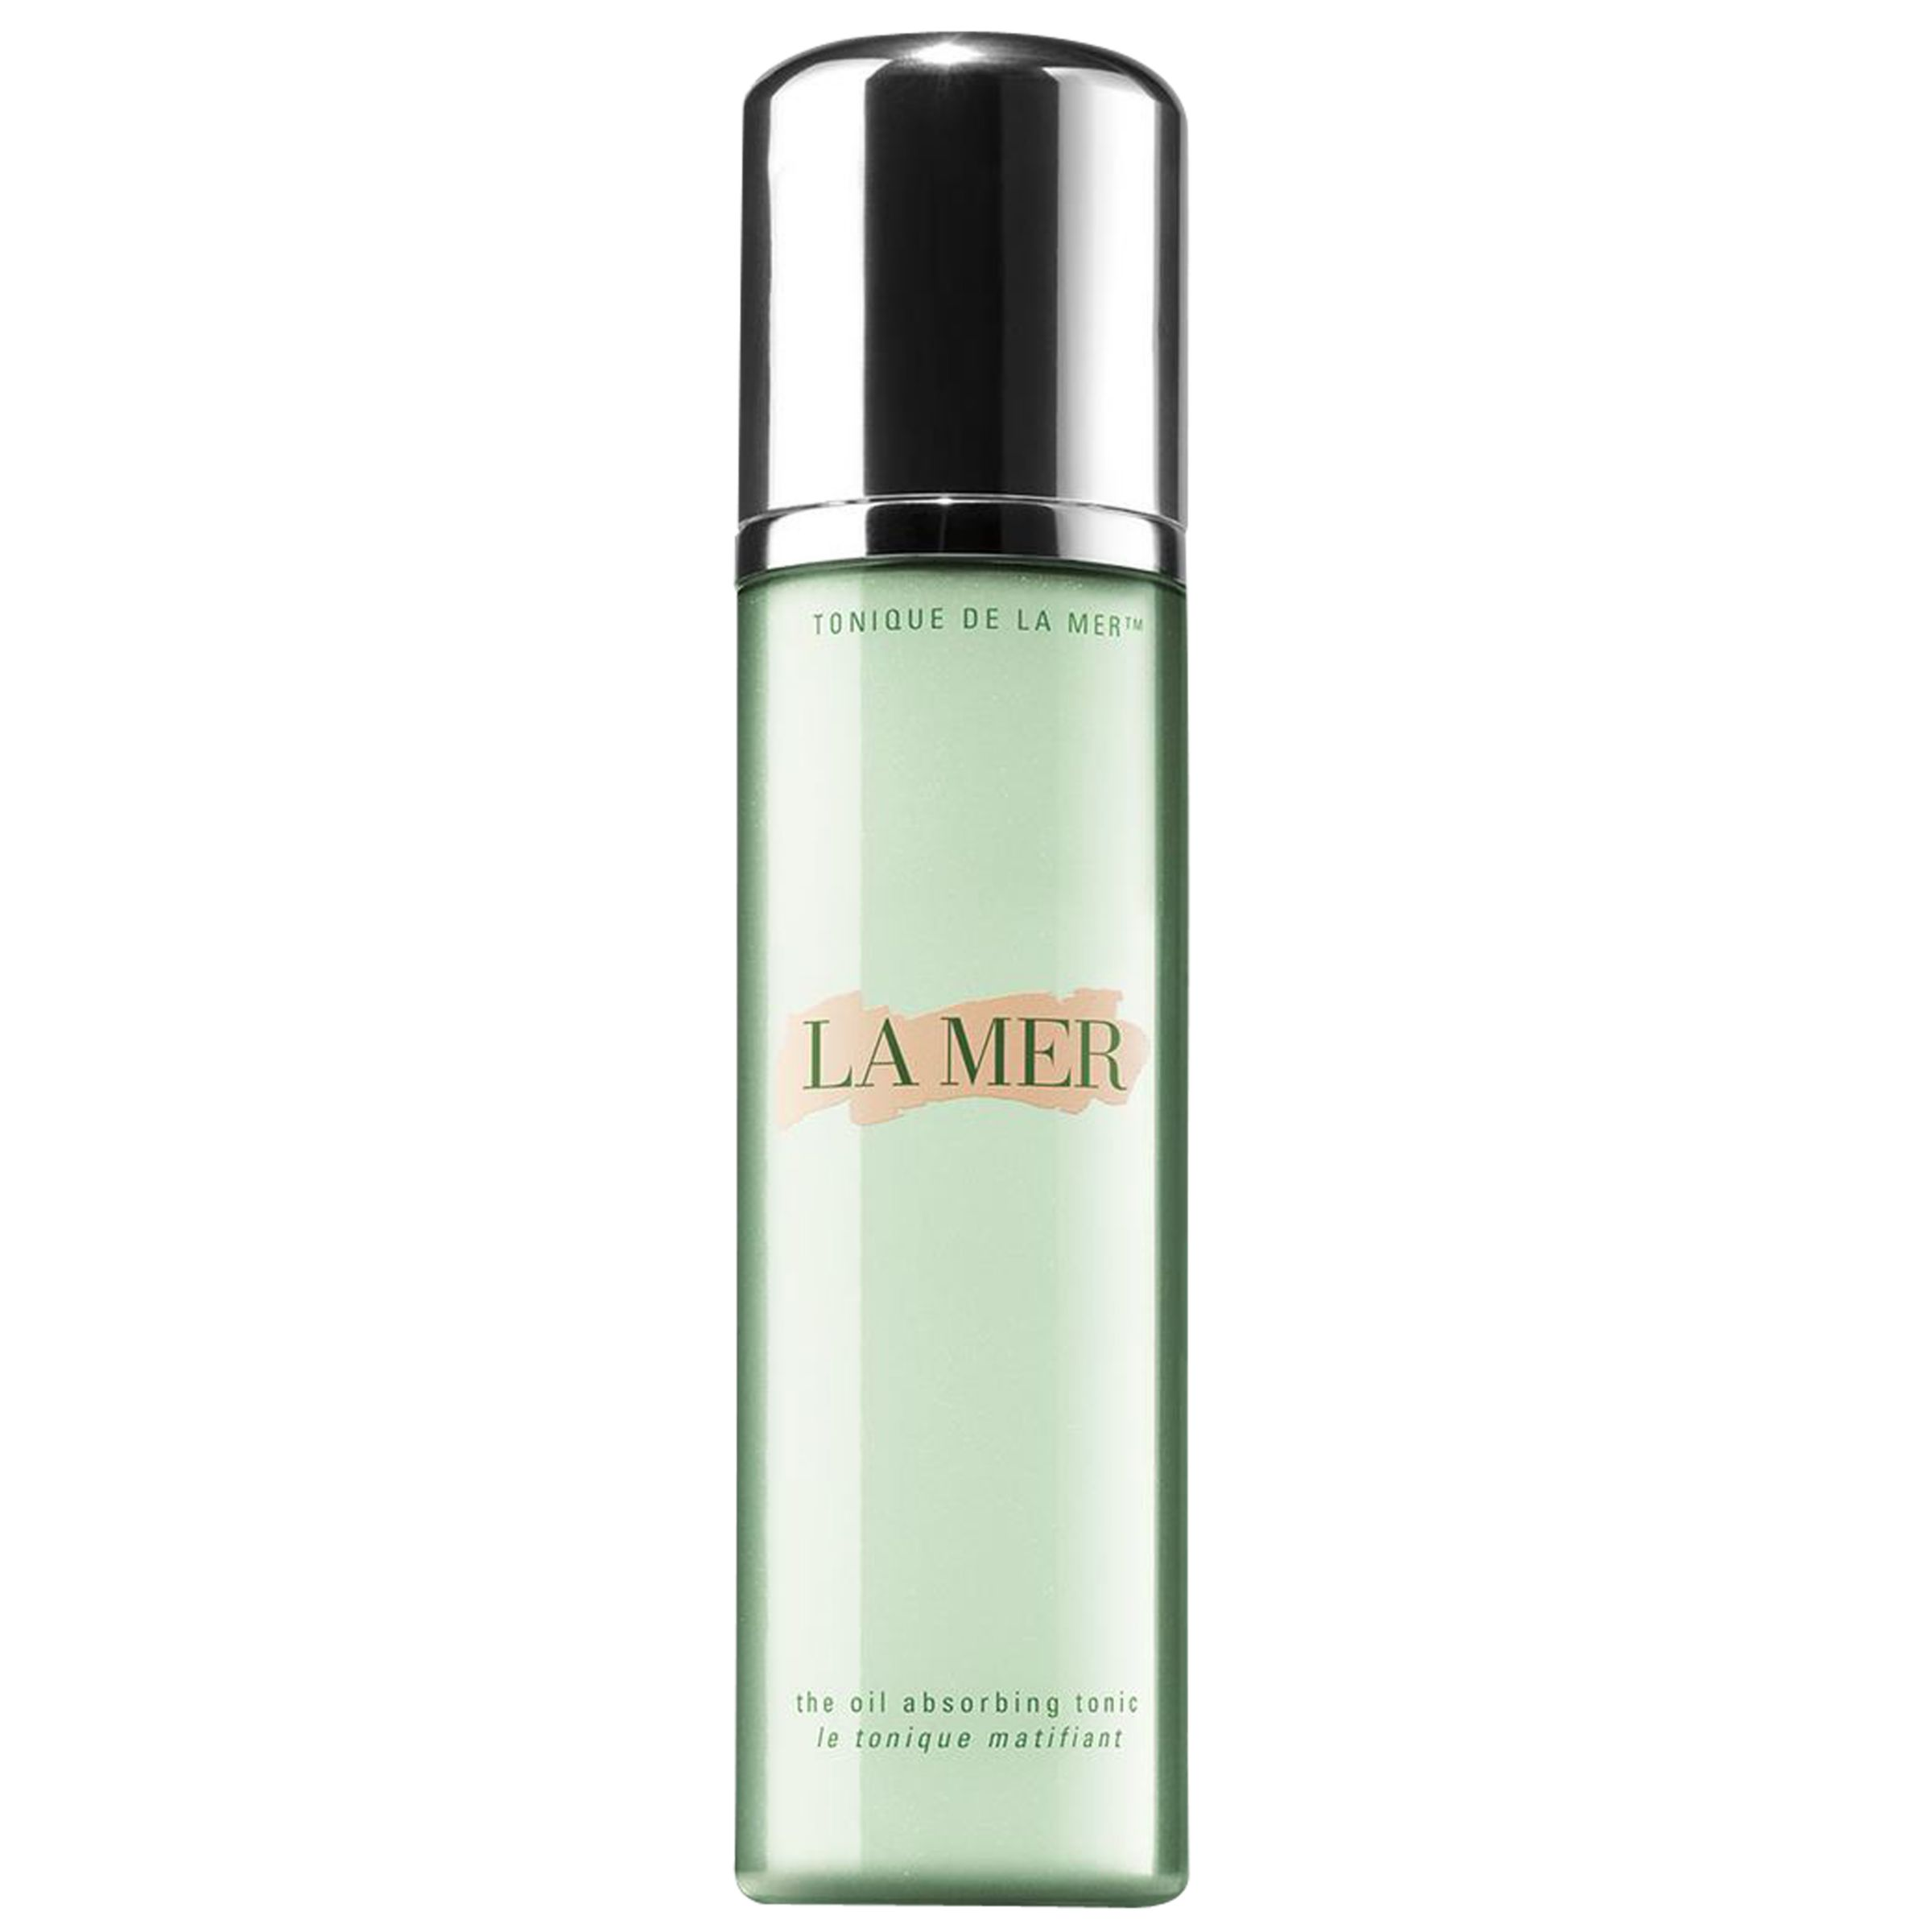 La Mer La Mer The Oil Absorbing Tonic, 200ml